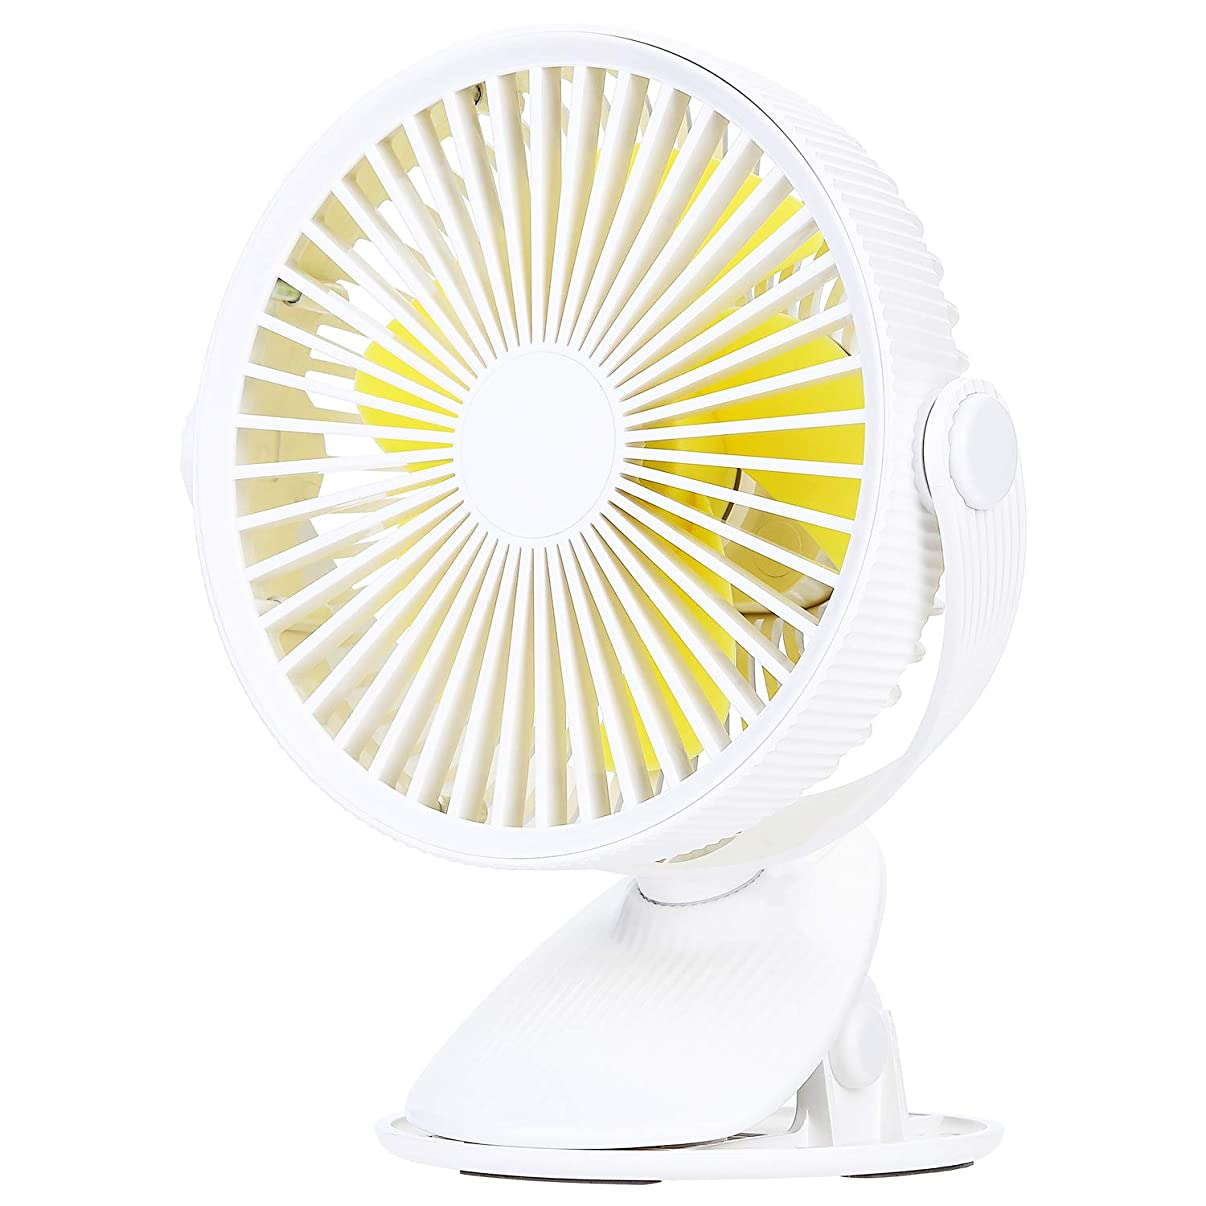 COSSCCI Small Desk Fan with Clip, Mini USB Personal Fan Portable Electronic Battery Operated Cooling Fan for Stroller Outdoor Home Office Bedroom (White)